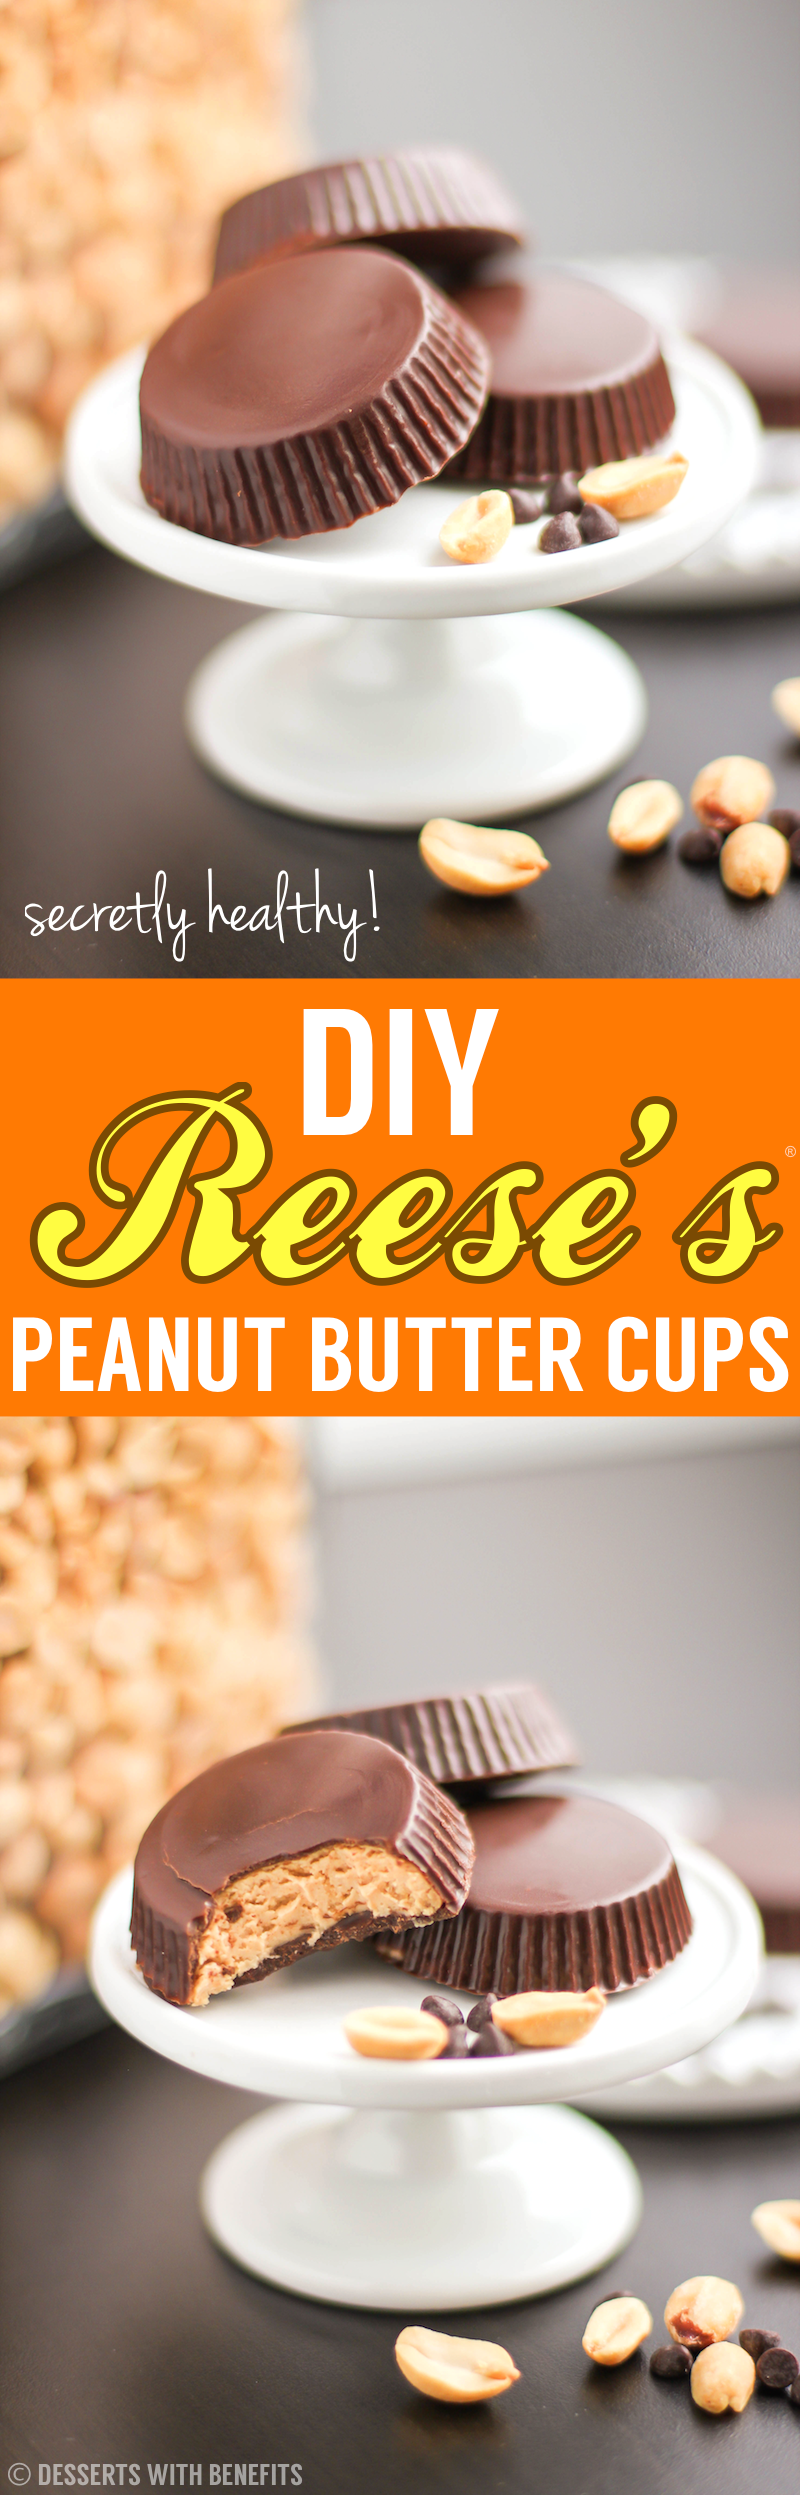 Healthy Homemade Peanut Butter Cups recipe | DIY Reese's (refined sugar free, low carb, high protein, high fiber, gluten free) - Healthy Dessert Recipes at Desserts with Benefits